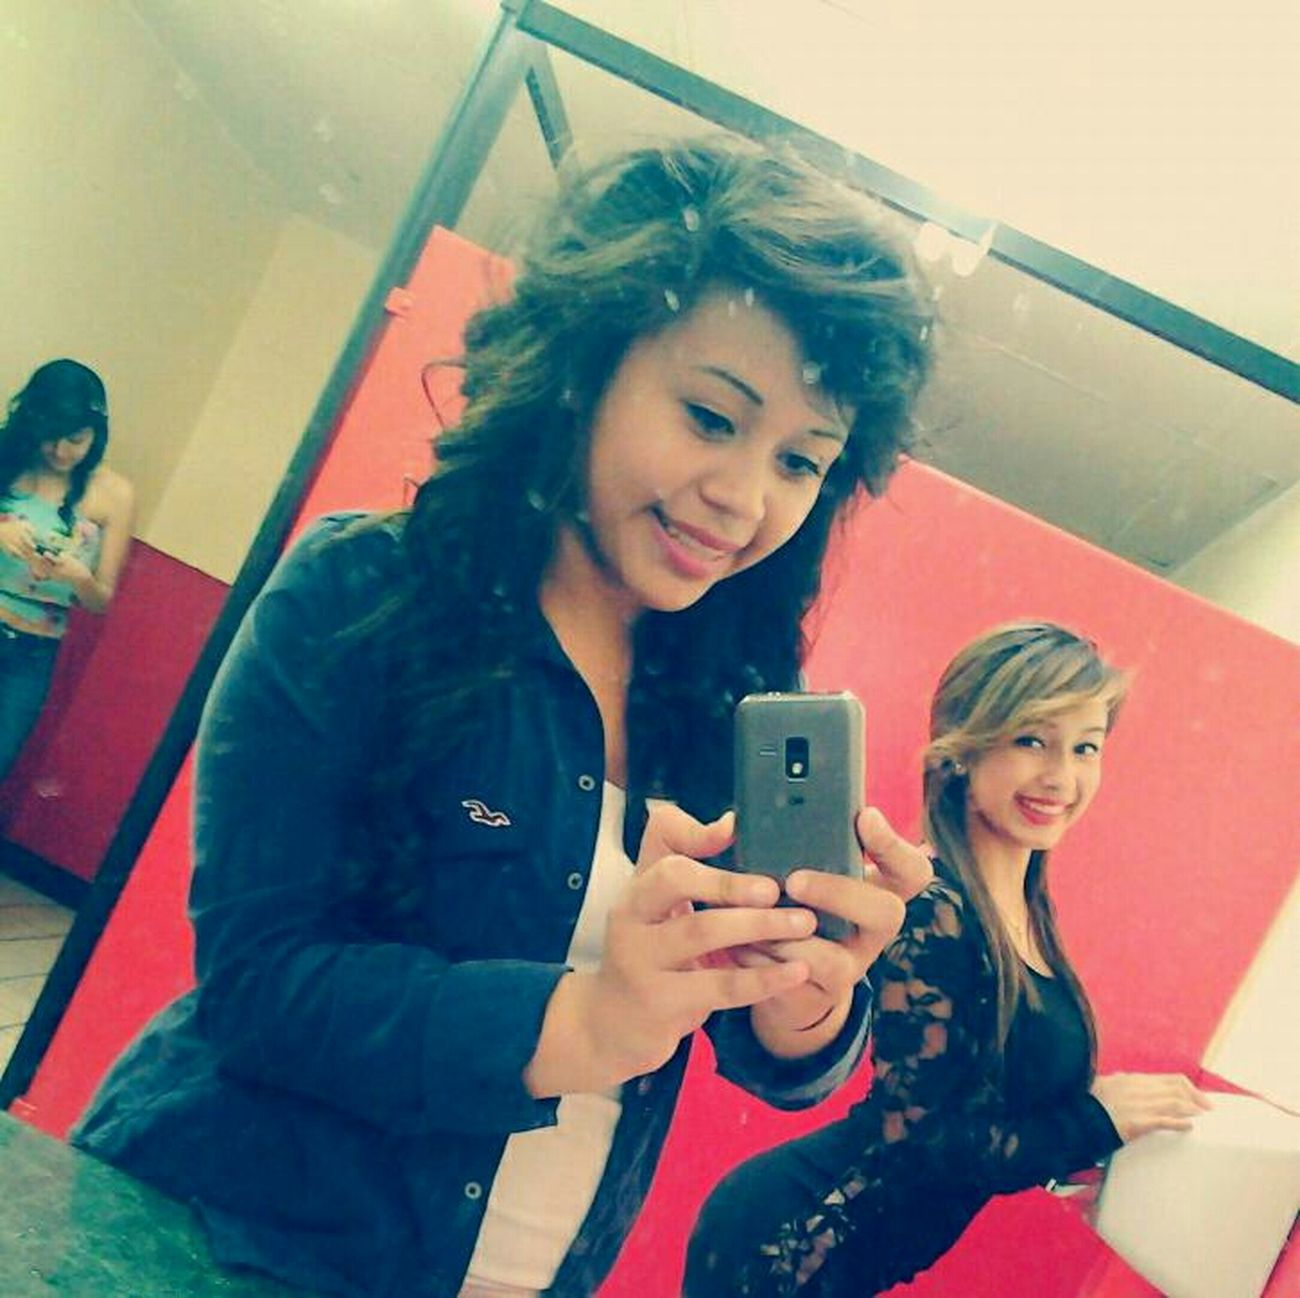 Dirty mirror .-. With silvia last night (: